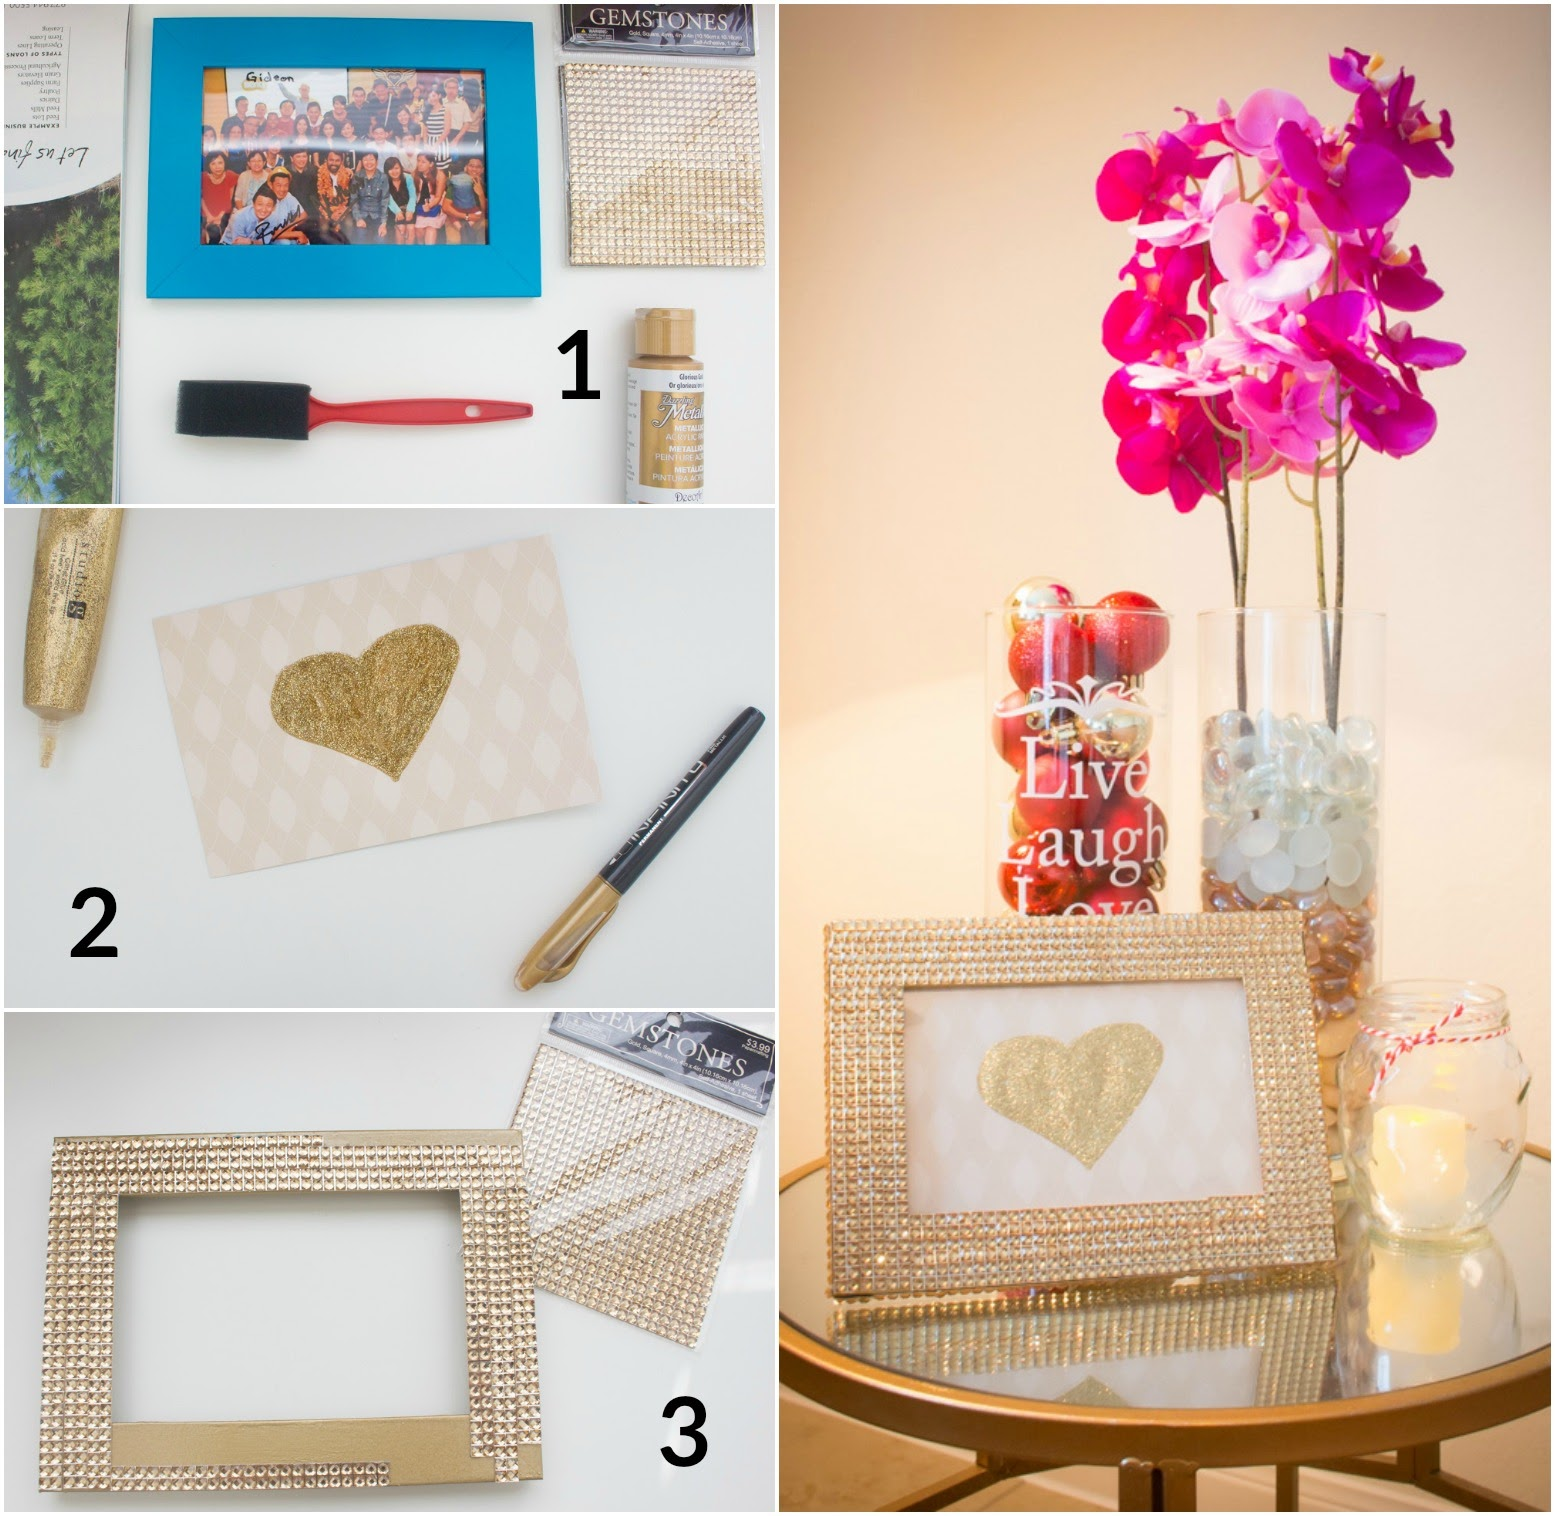 Ikea Hack: How to Glamourize Ikea's Nyttja Picture Frame